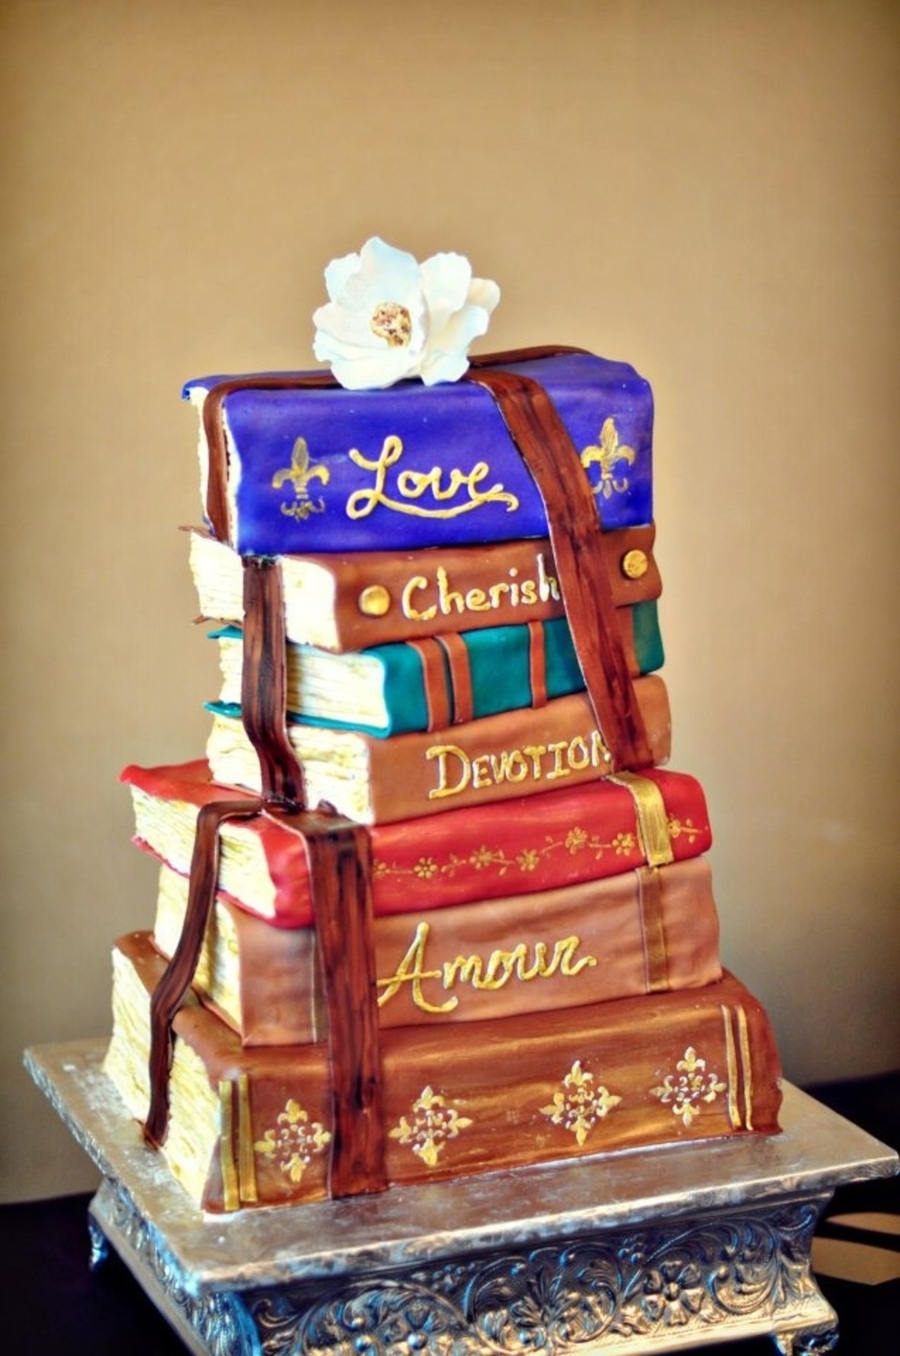 Cake Designs Book Shape : Romantic Stacked Books Wedding Cake - CakeCentral.com